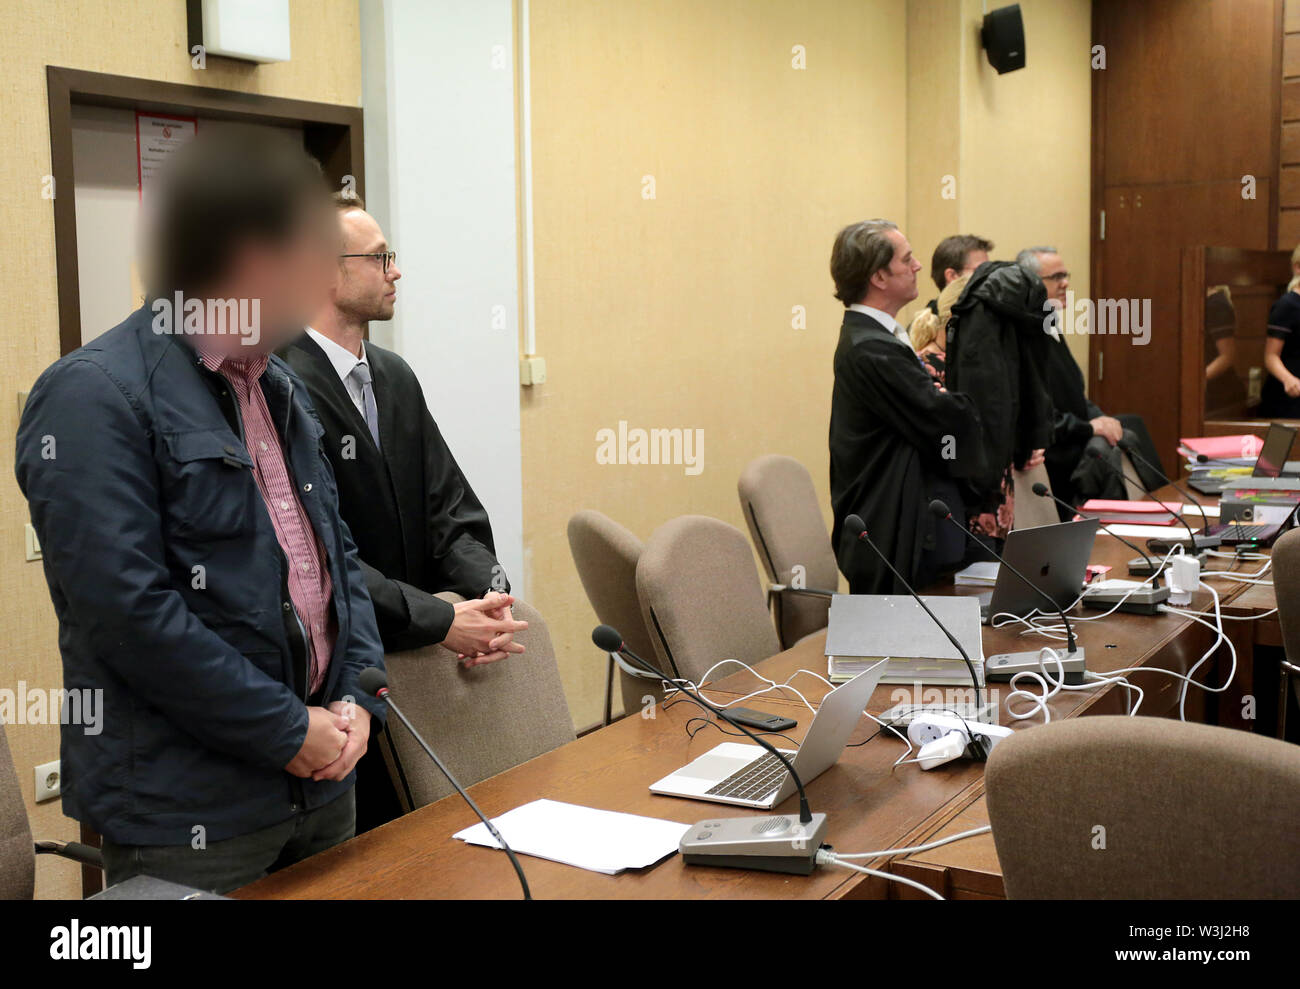 Cologne, Germany. 16th July, 2019. A woman accused of the insidious murder of her husband and a lover (l) accused of complicity are standing next to her lawyers in the courtroom. The woman is said to have first administered poison to her husband and then killed him with stab wounds. With the help of her lover, the woman is said to have cut up the body in a bathtub and later disposed of it in a river. Credit: Oliver Berg/dpa - ATTENTION: person(s) was/are pixelated for legal reasons/dpa/Alamy Live News - Stock Image